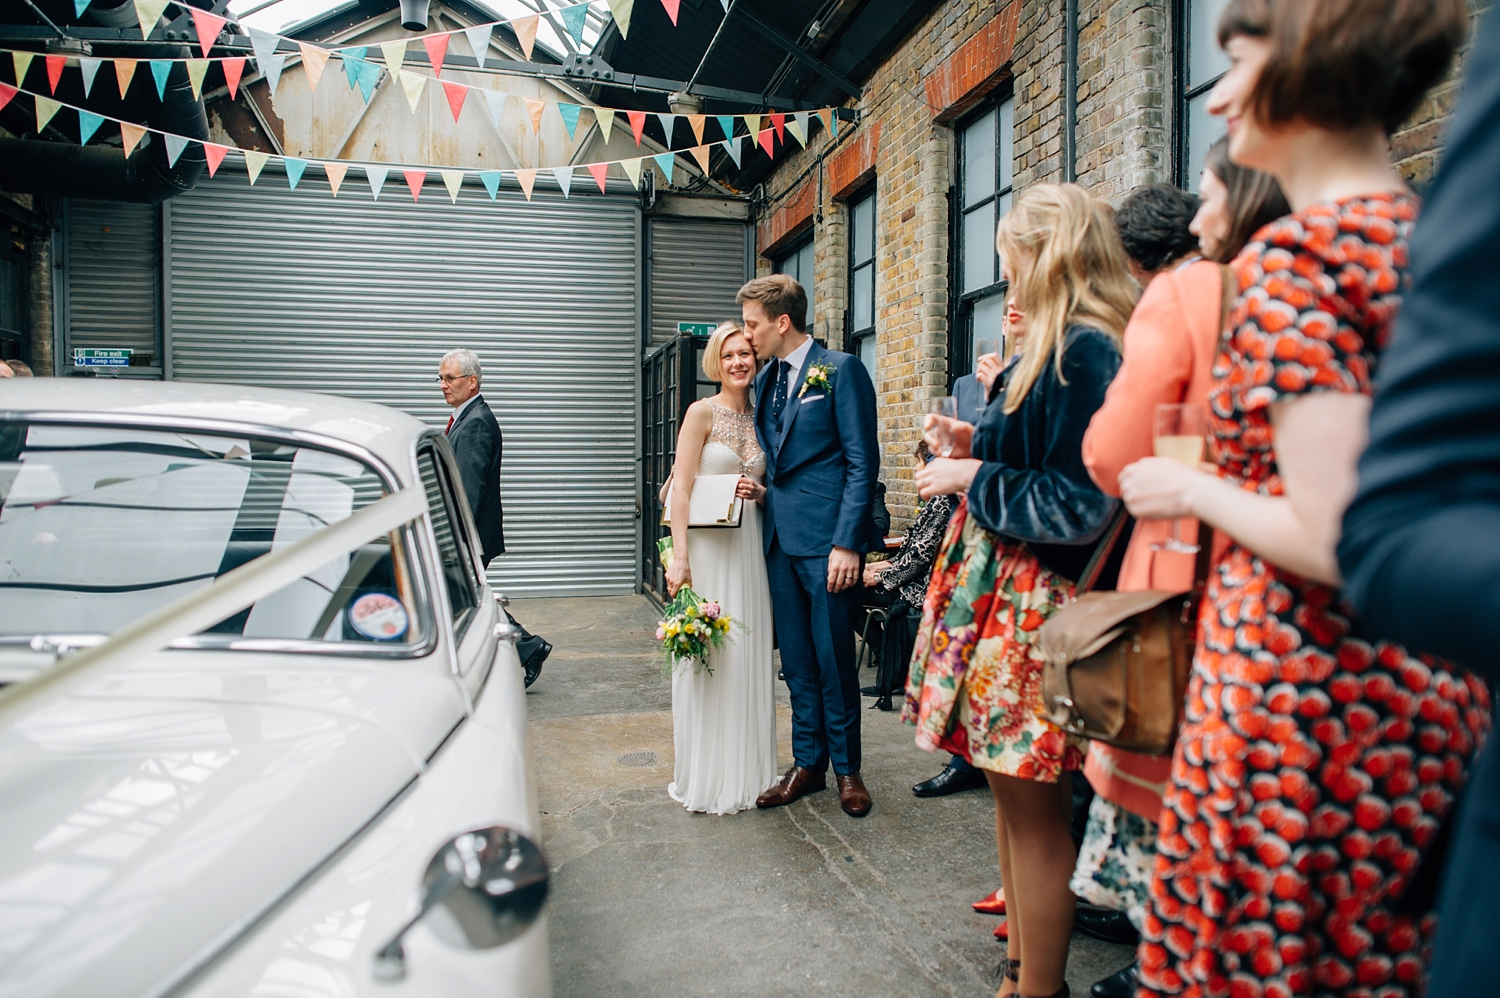 0105-lisa-devine-alternative-wedding-photography-london-hackney-dalston-london-photography-townhall-hotel.JPG